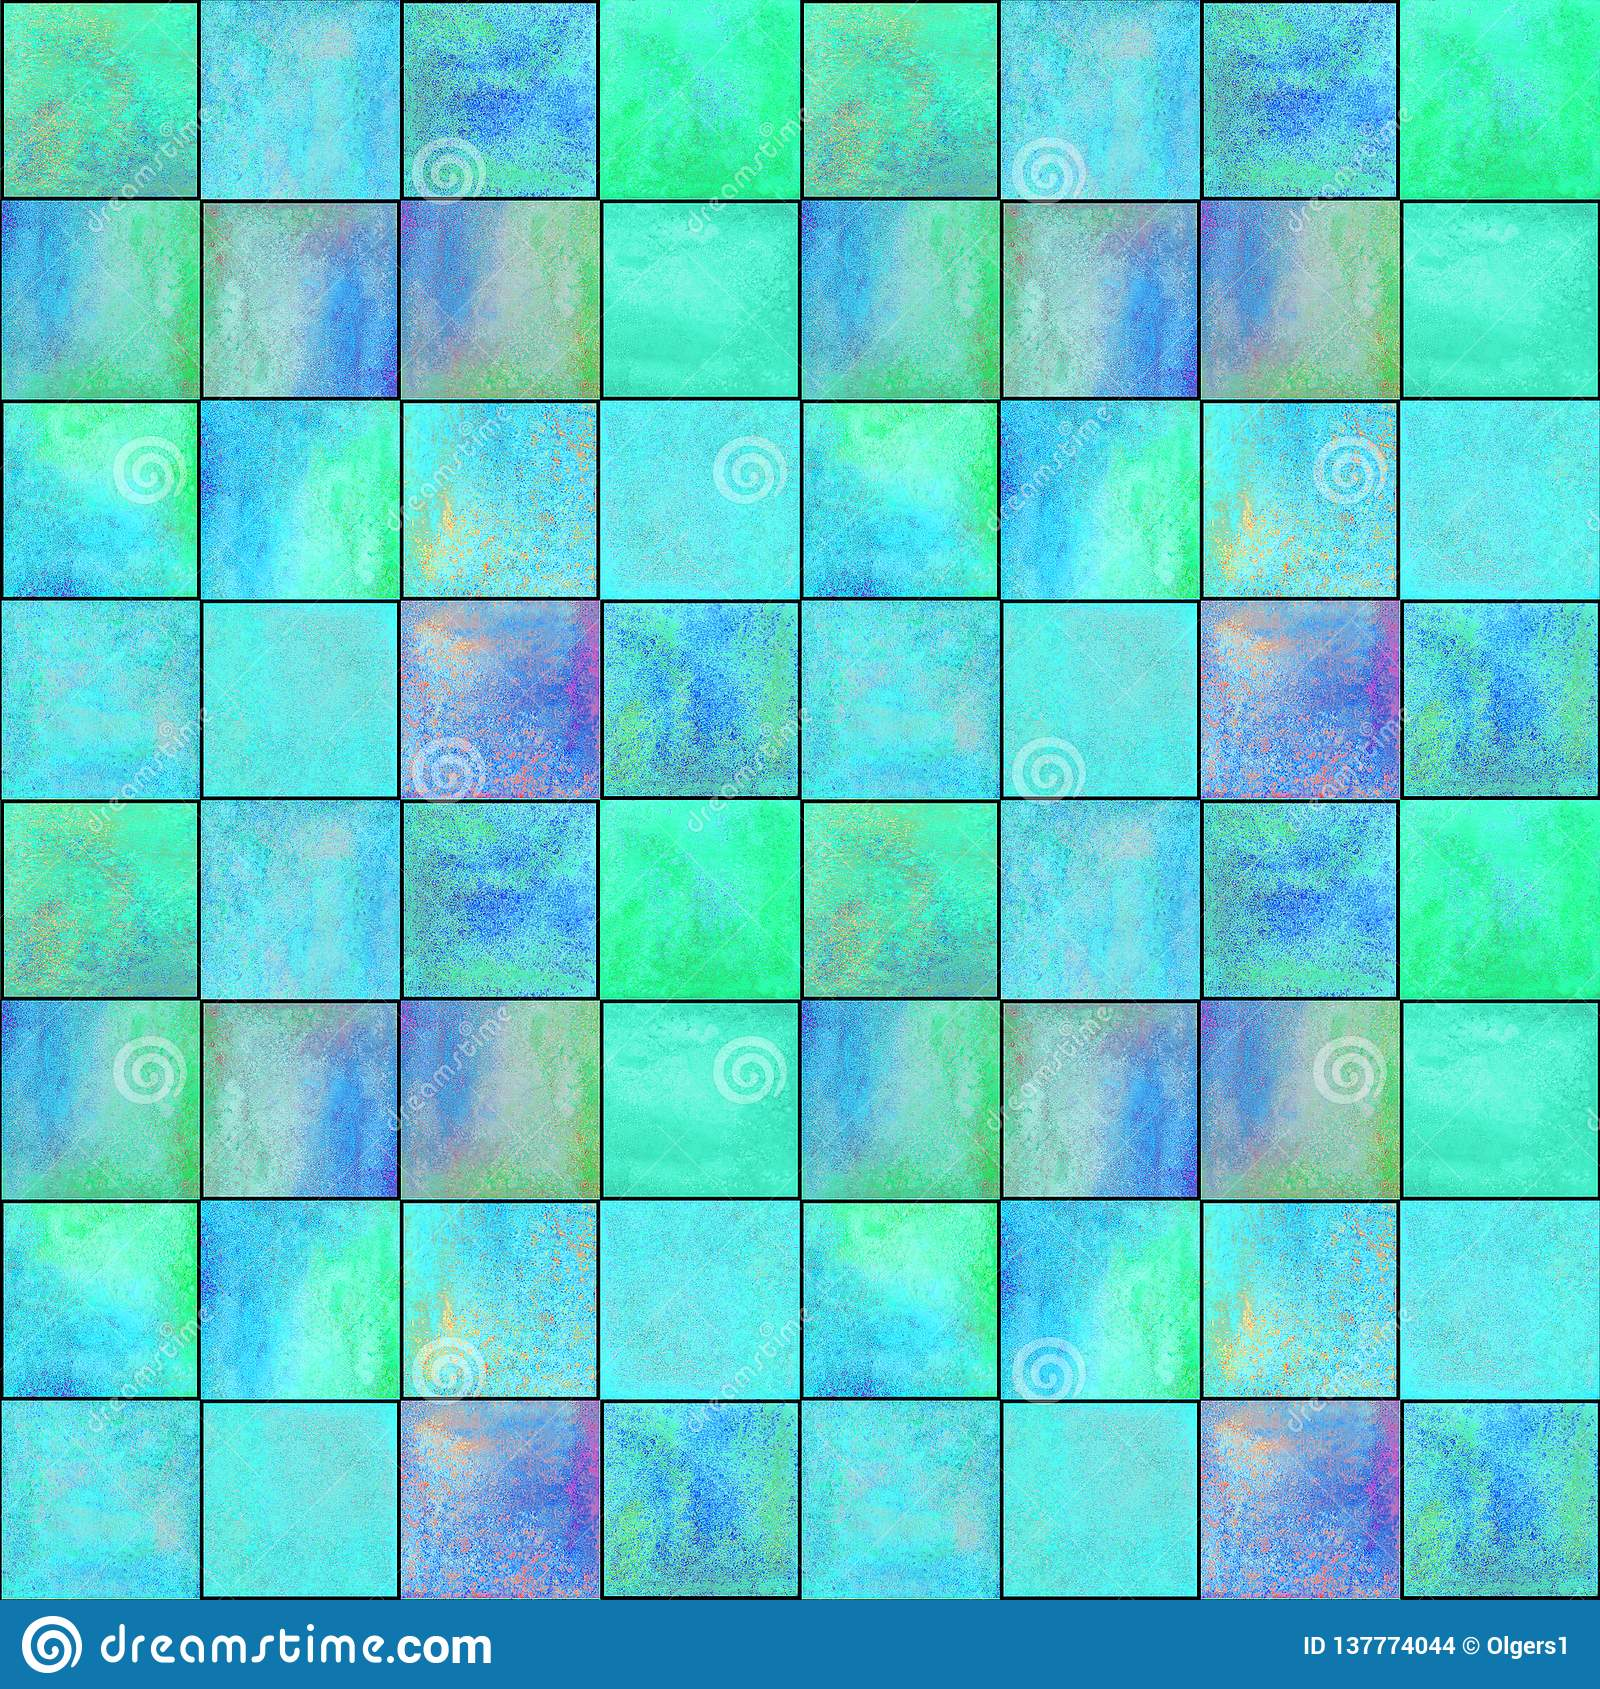 Abstract geometric seamless pattern with squares. Colorful watercolour artwork